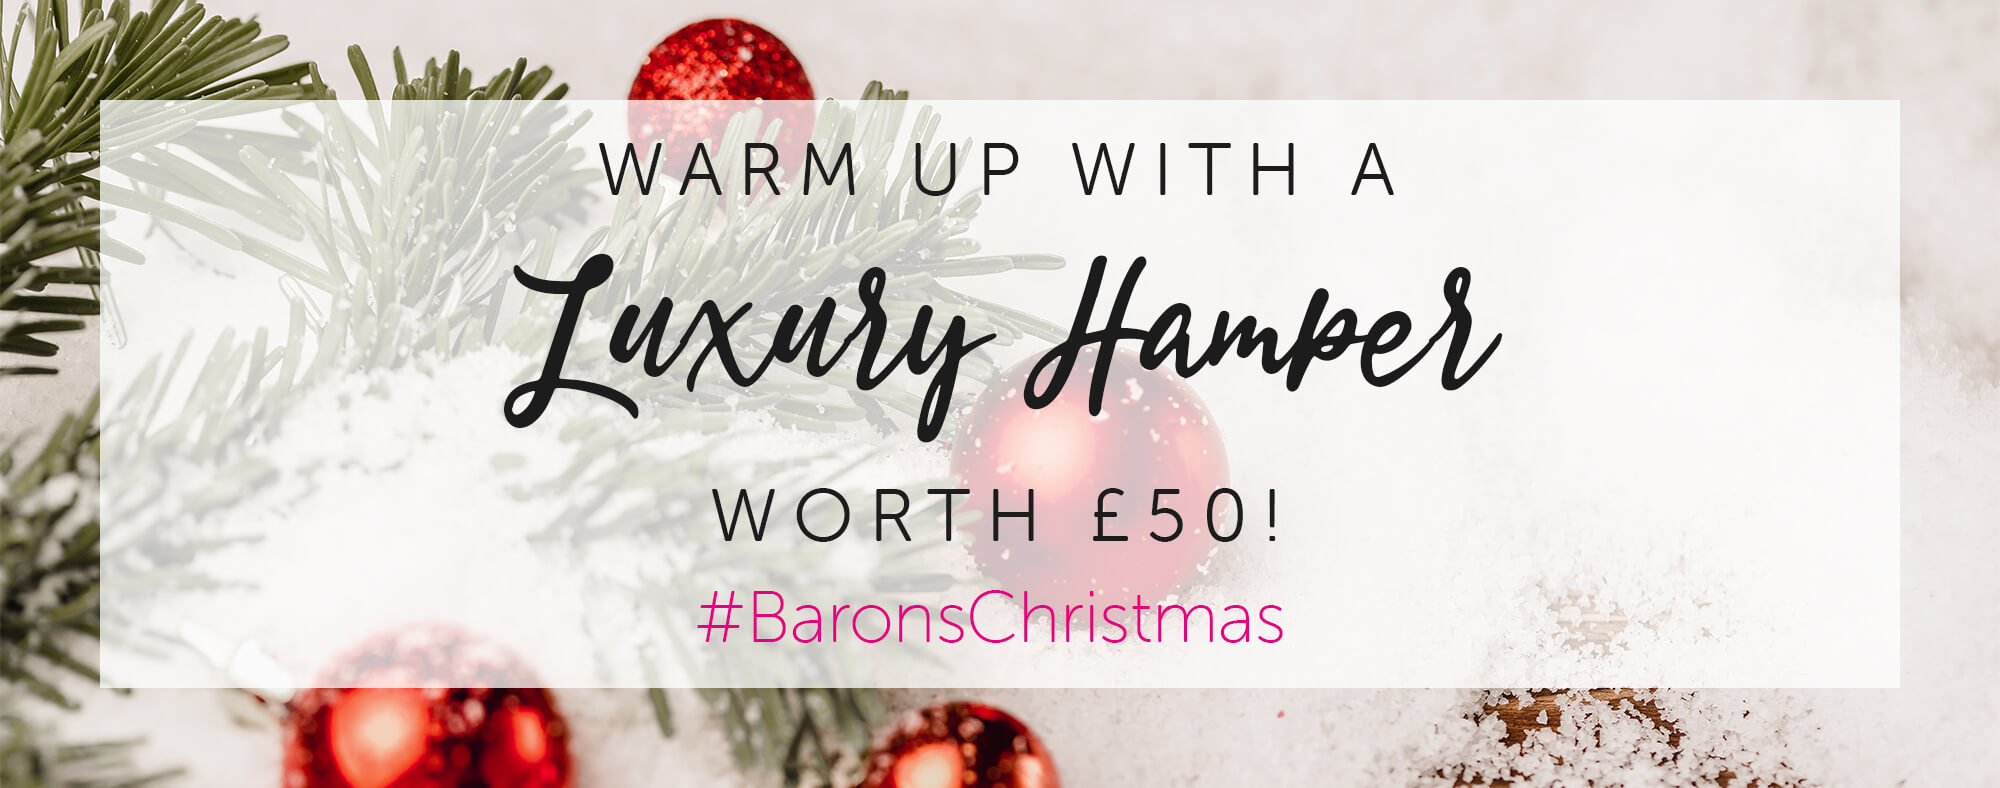 Warm up with a Christmas luxury Hamper worth £50!